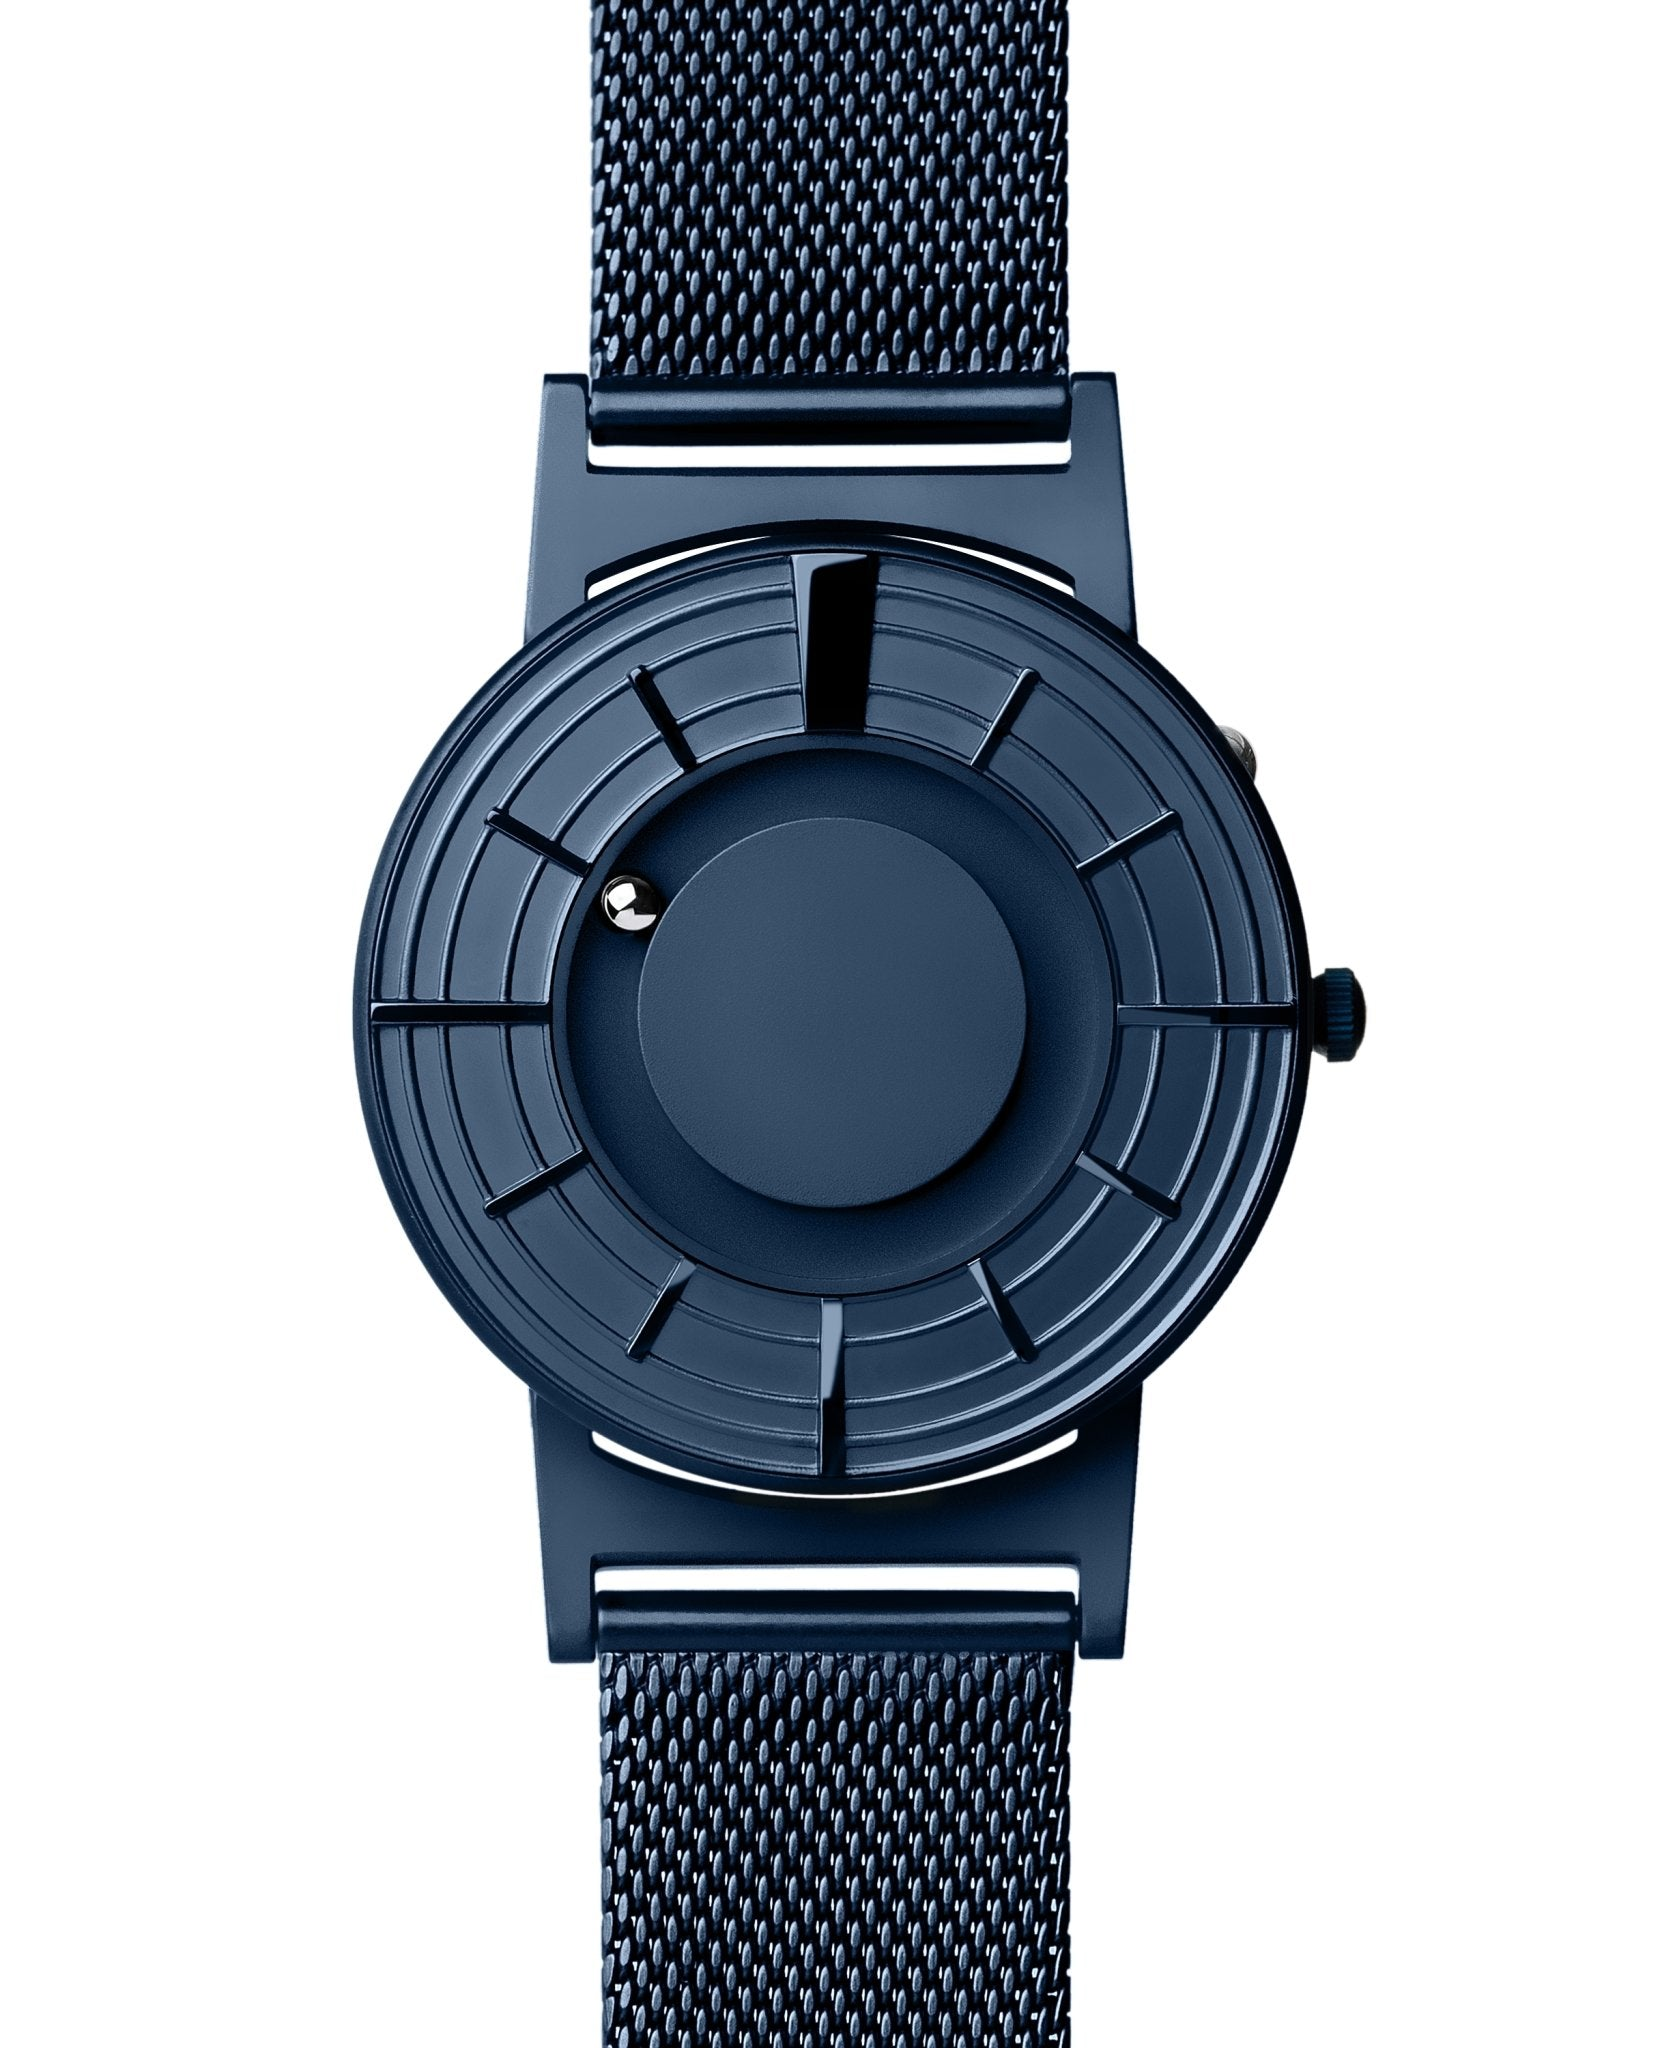 Eone Bradley Edge Blue Mesh - Watches & Crystals